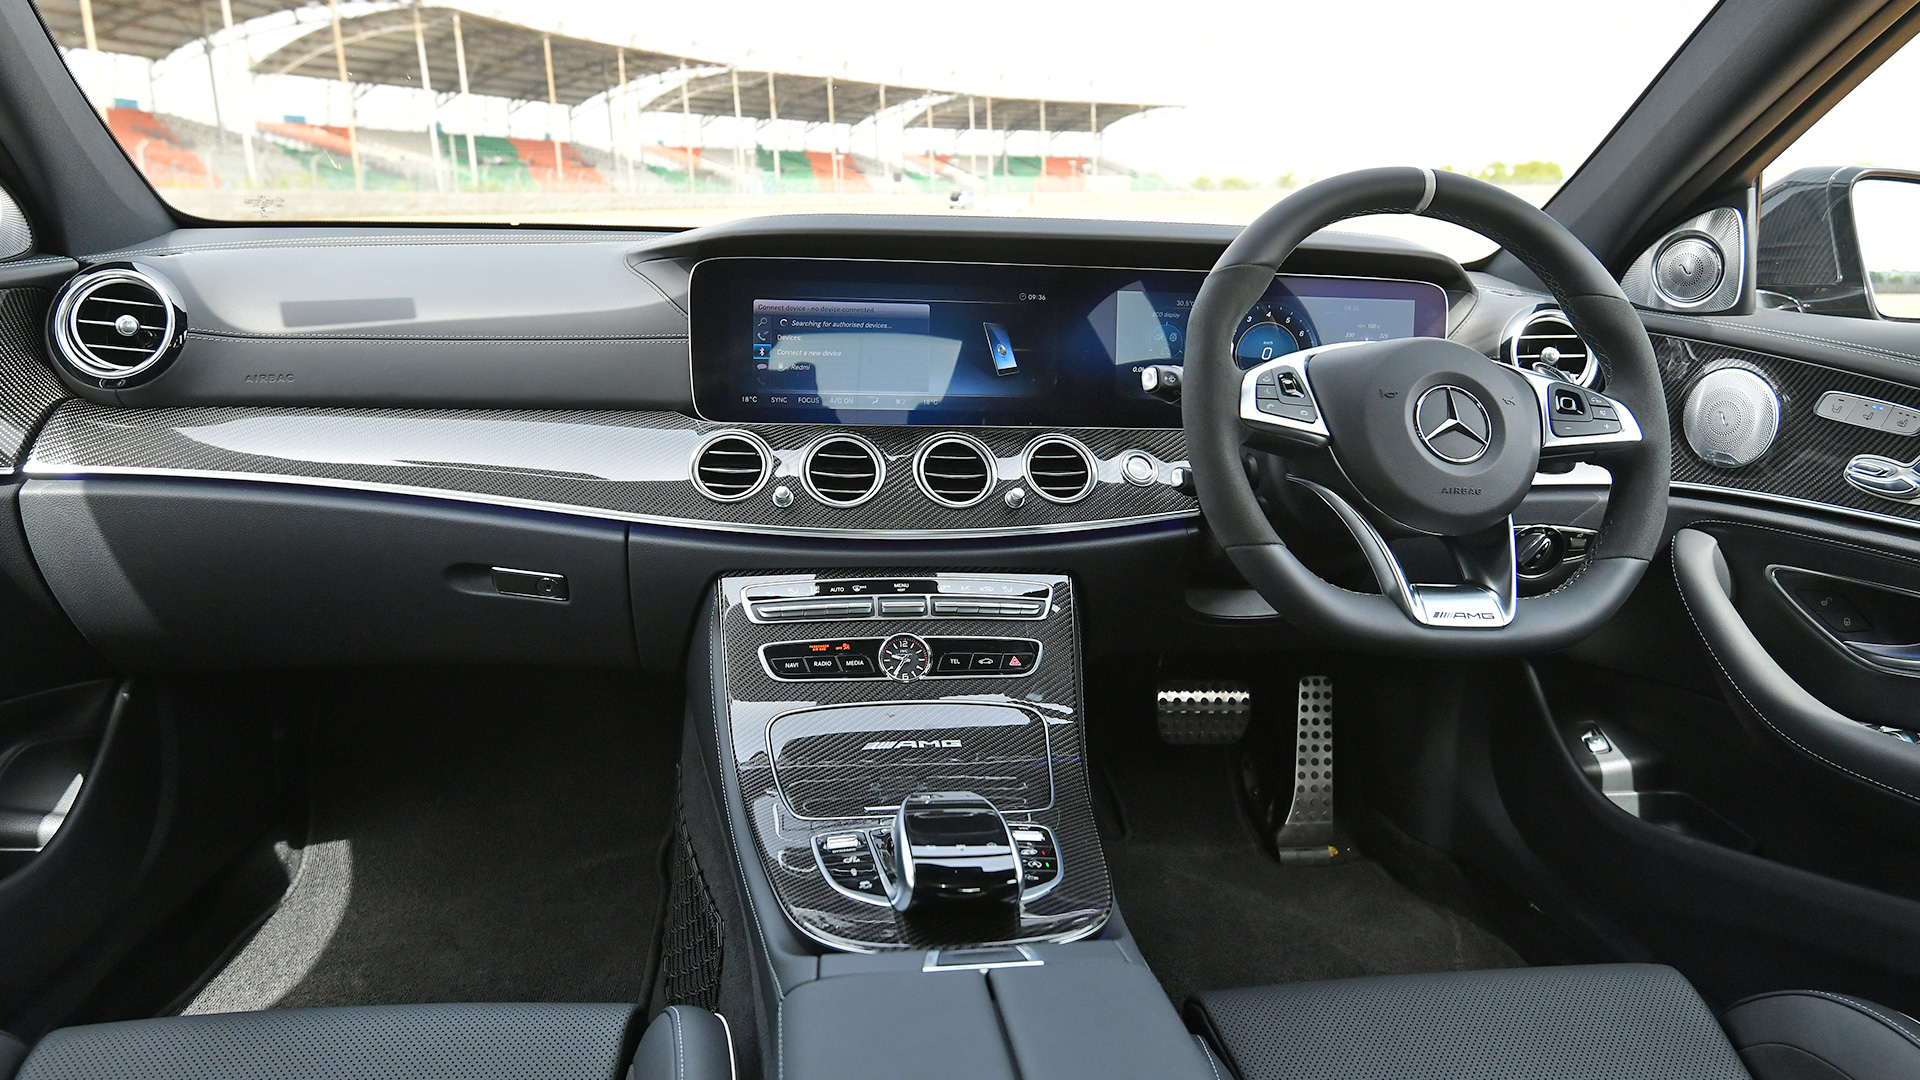 Mercedes benz E63 AMG 2018 S Interior Car s Overdrive